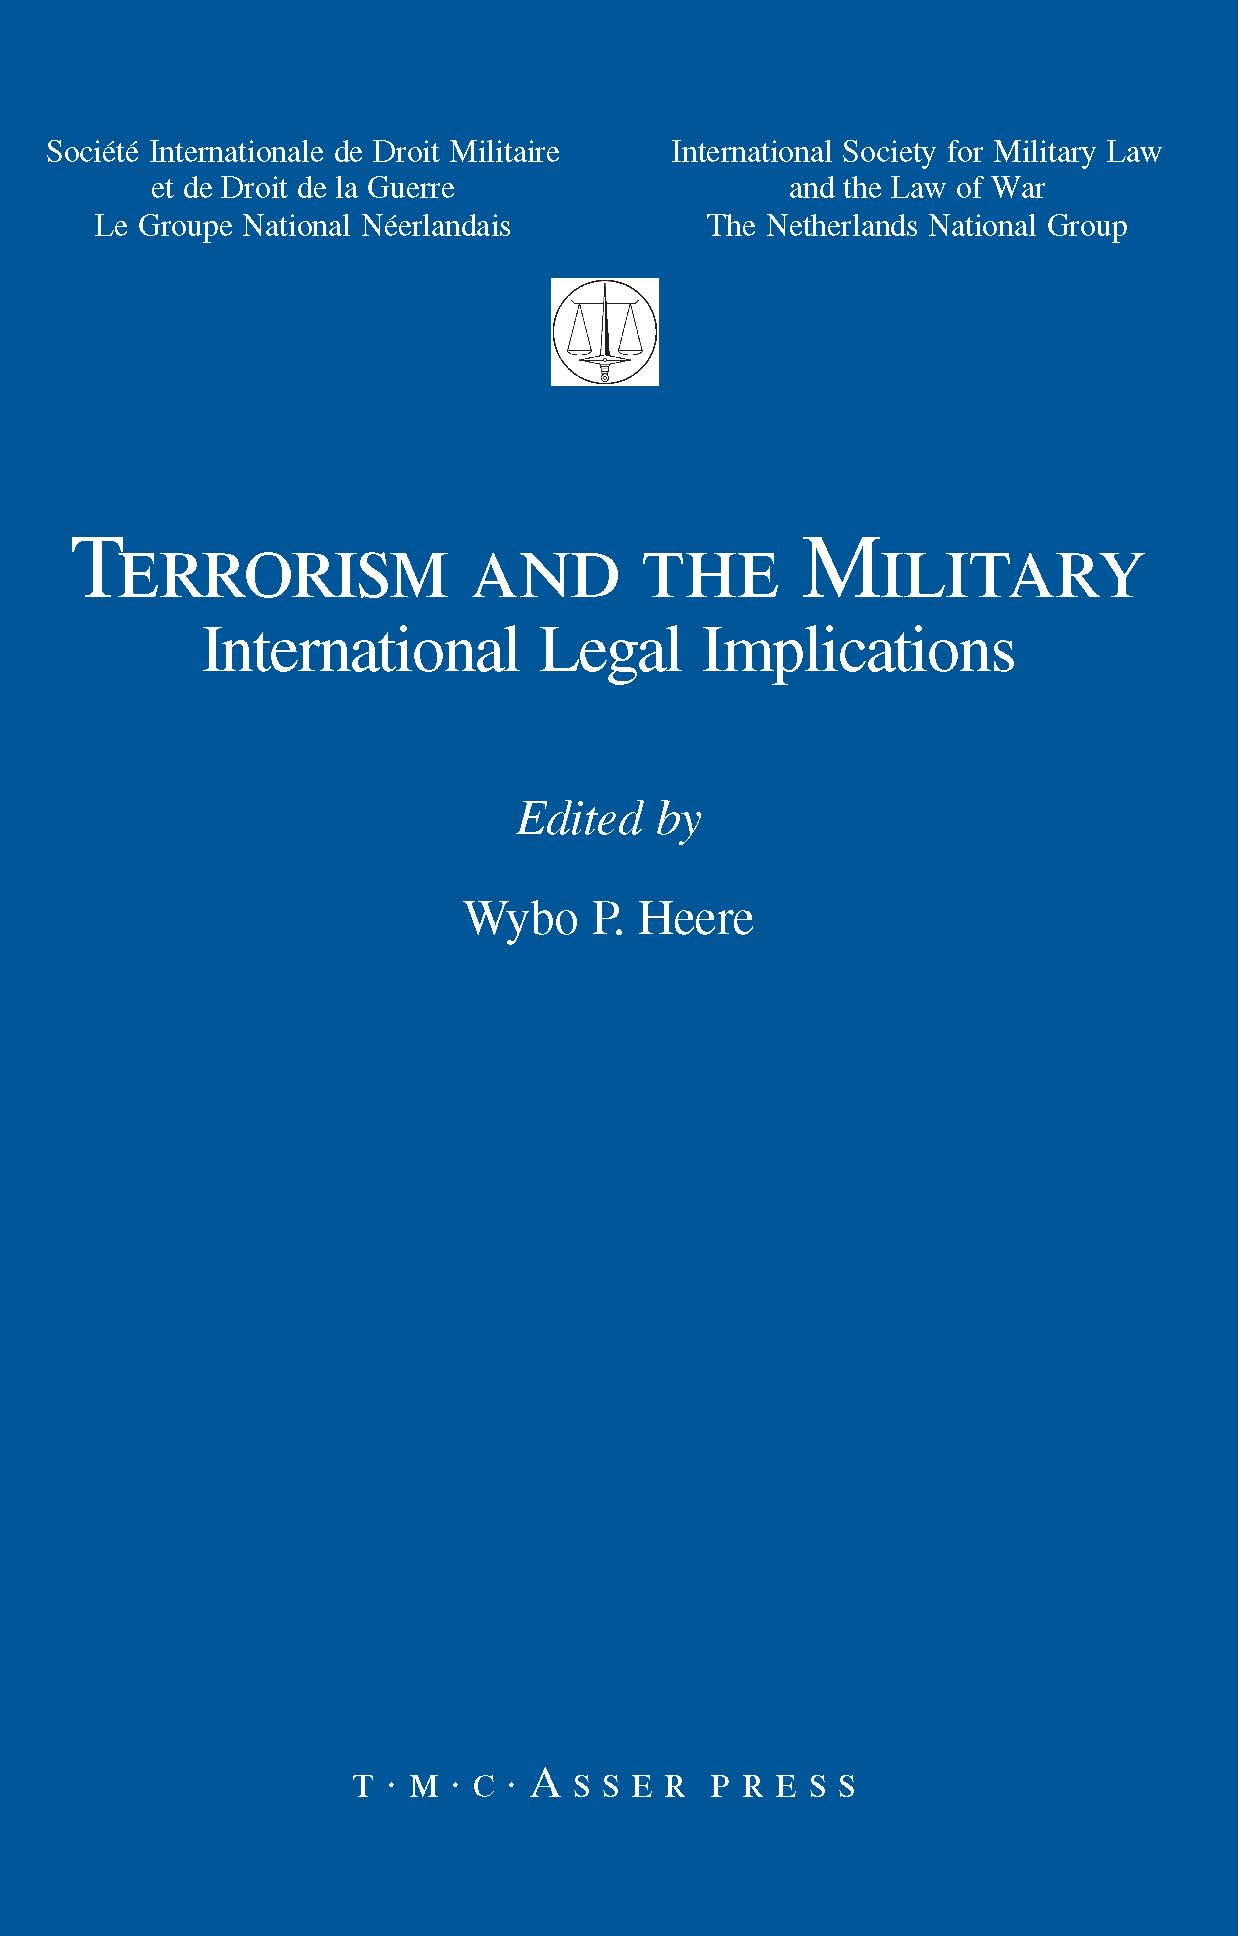 Terrorism and the Military - International Legal Implications